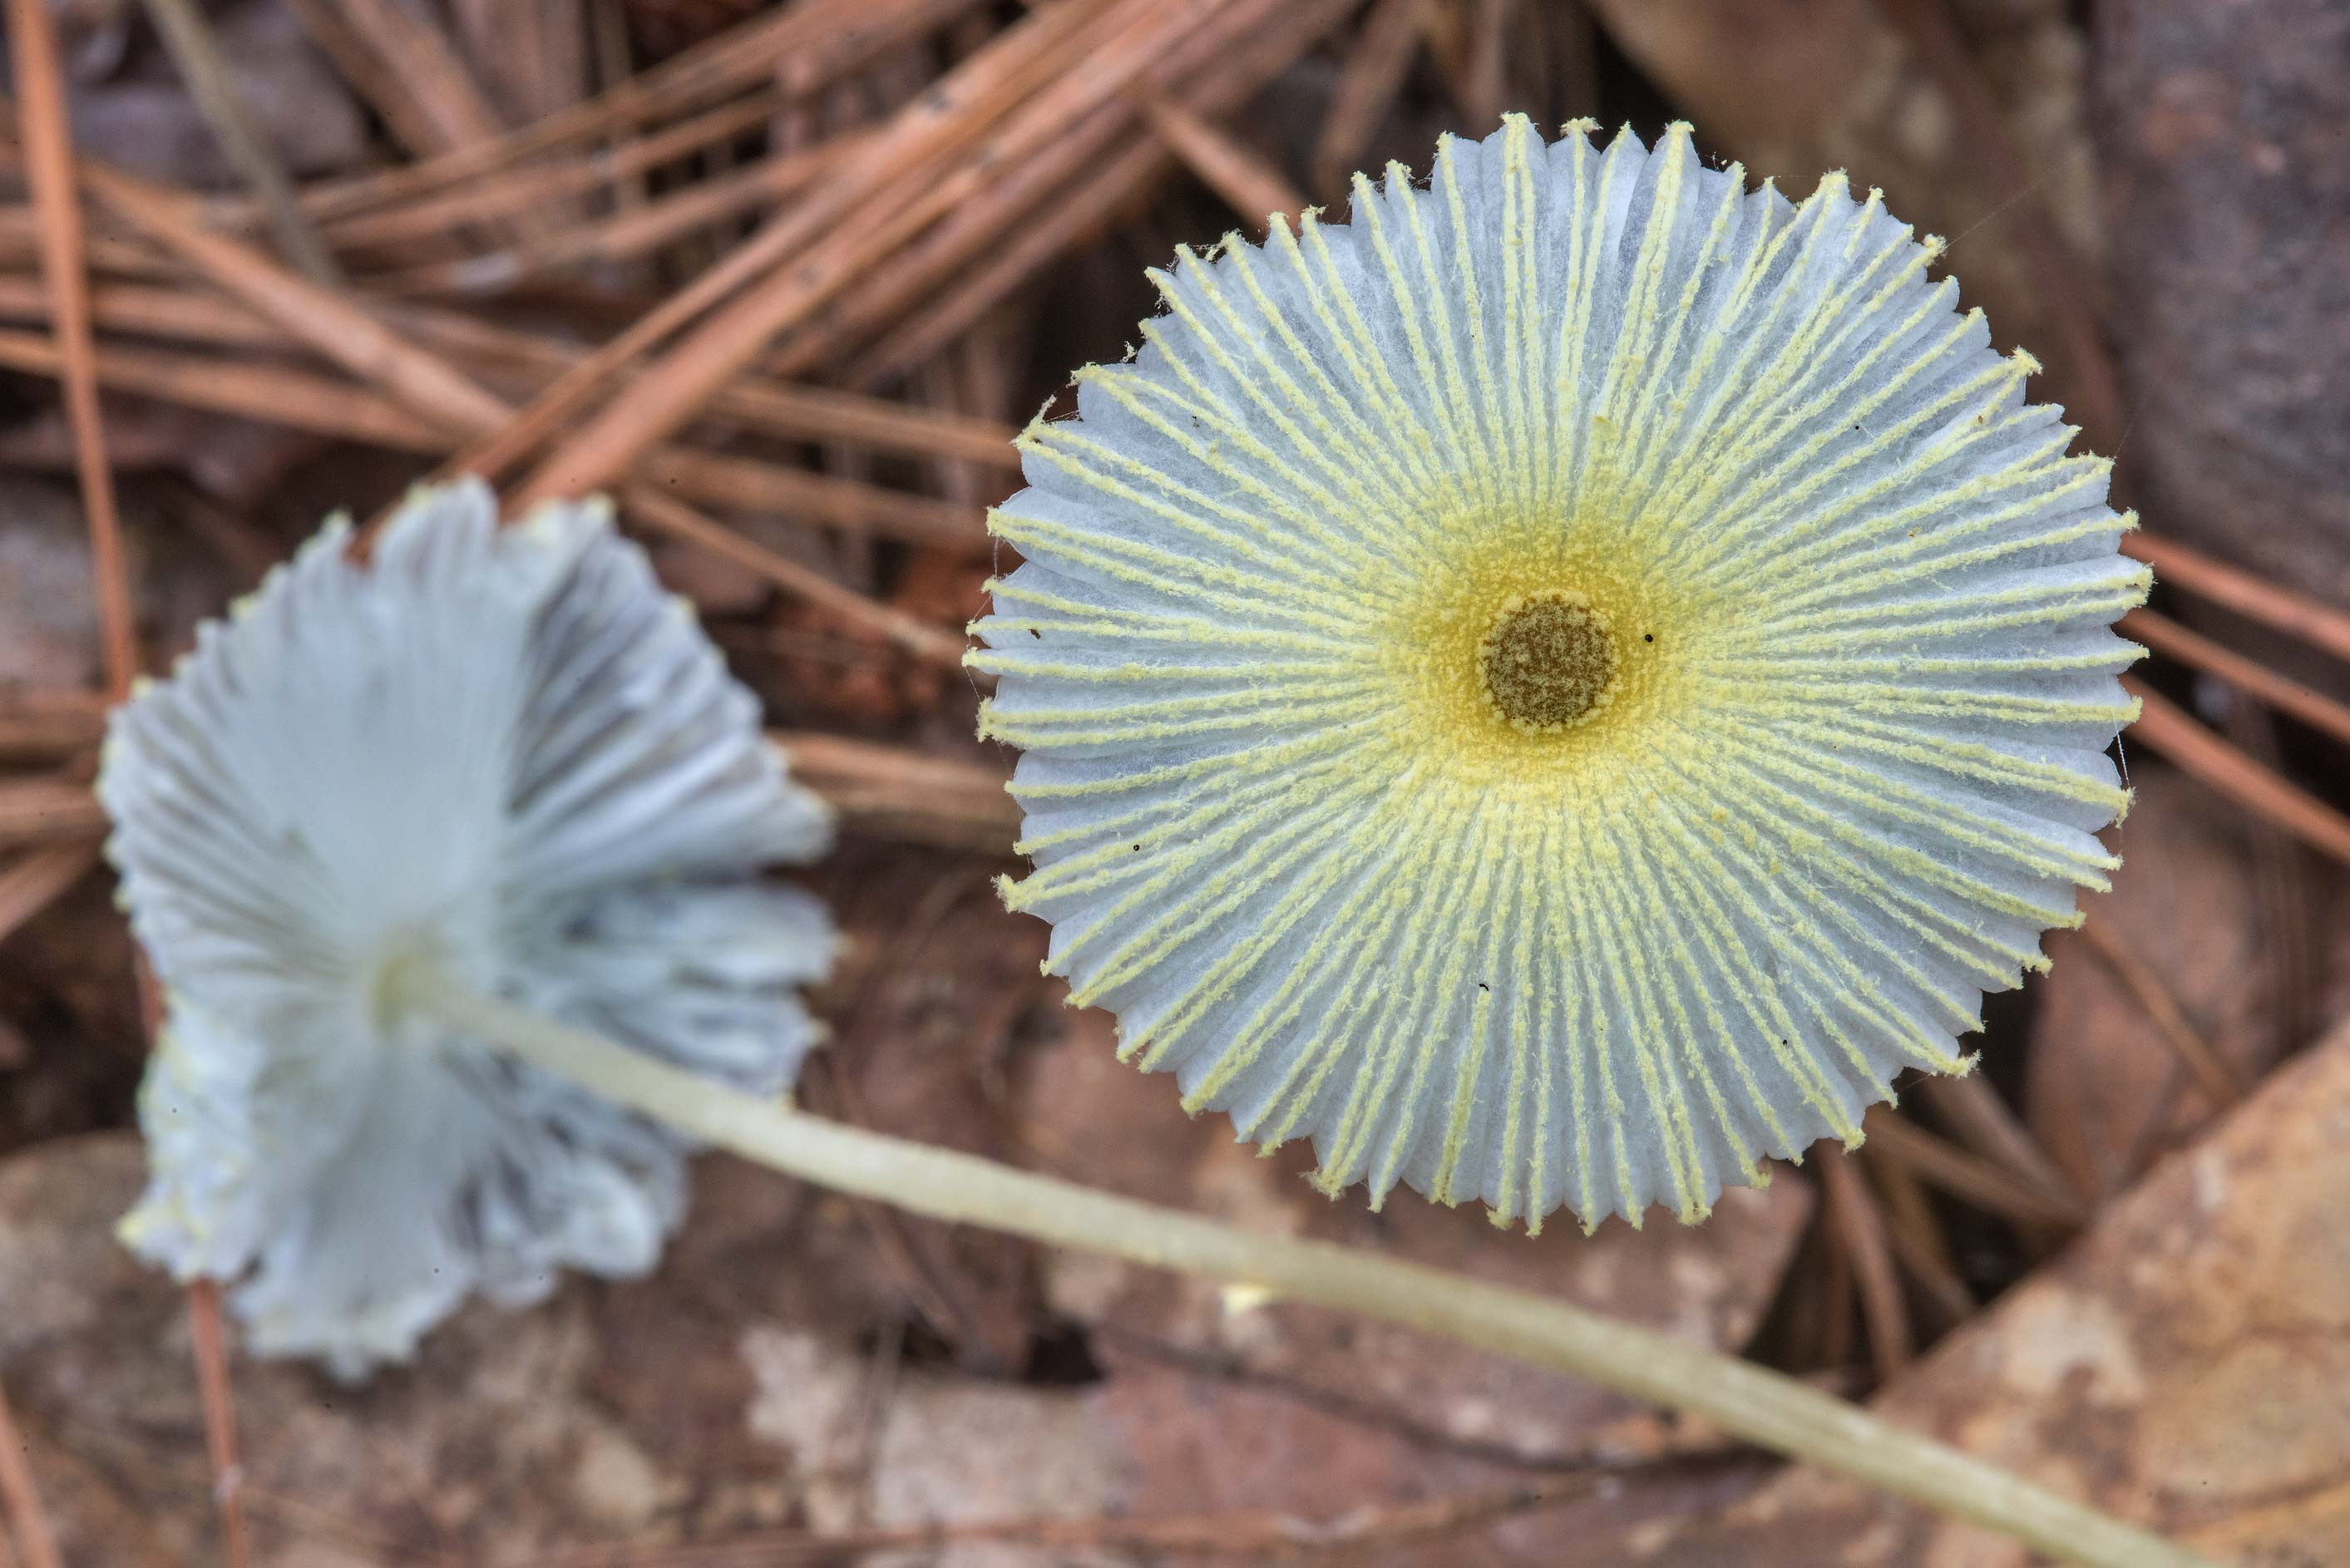 Pleated cap of fragile dapperling mushrooms...Forest, near Huntsville. Texas